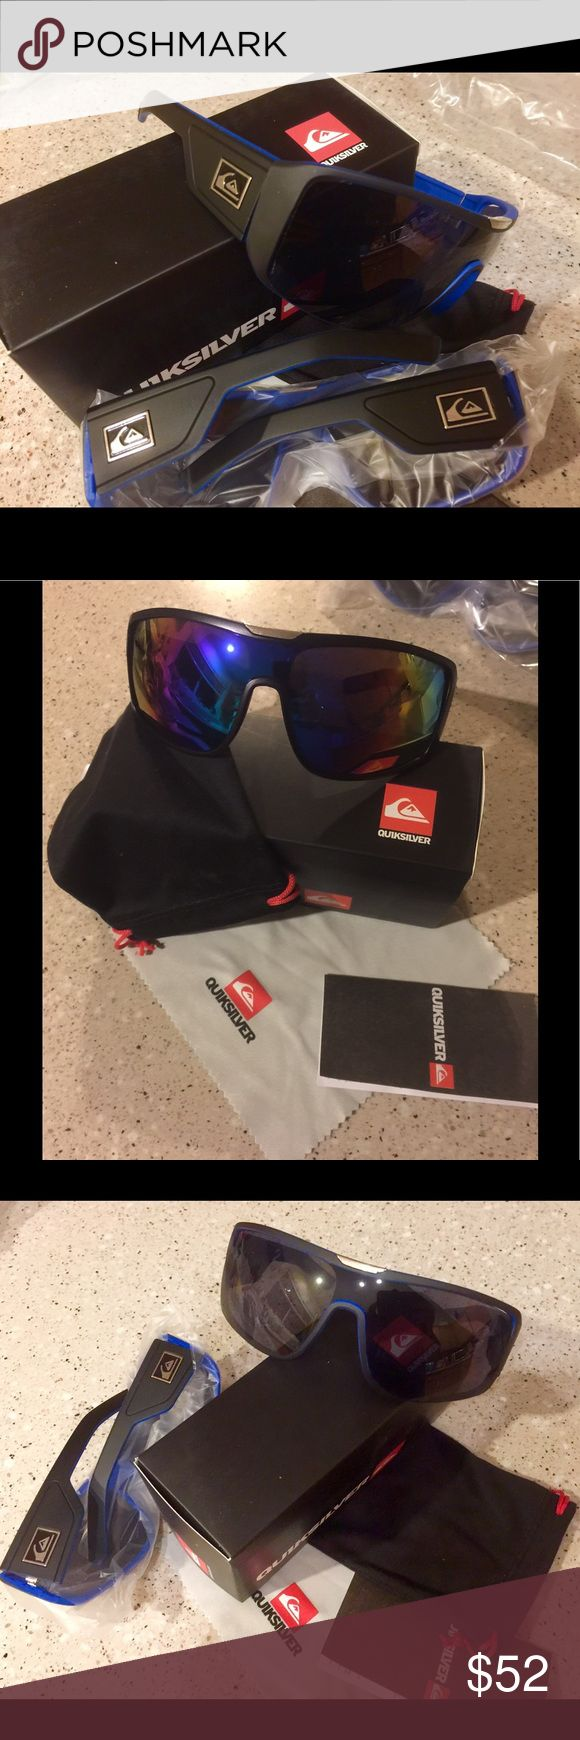 """New """"Solar"""" Watch and Quiksilver Sunglass Bundle This is an amazing Bundle!   New Quiksilver sunglasses in original box and soft case PLUS a Solar Powered watch!!   Price is firm. Discounts available with a bundle only.  LAST SILVER WATCH in stock! Quiksilver Accessories Sunglasses"""